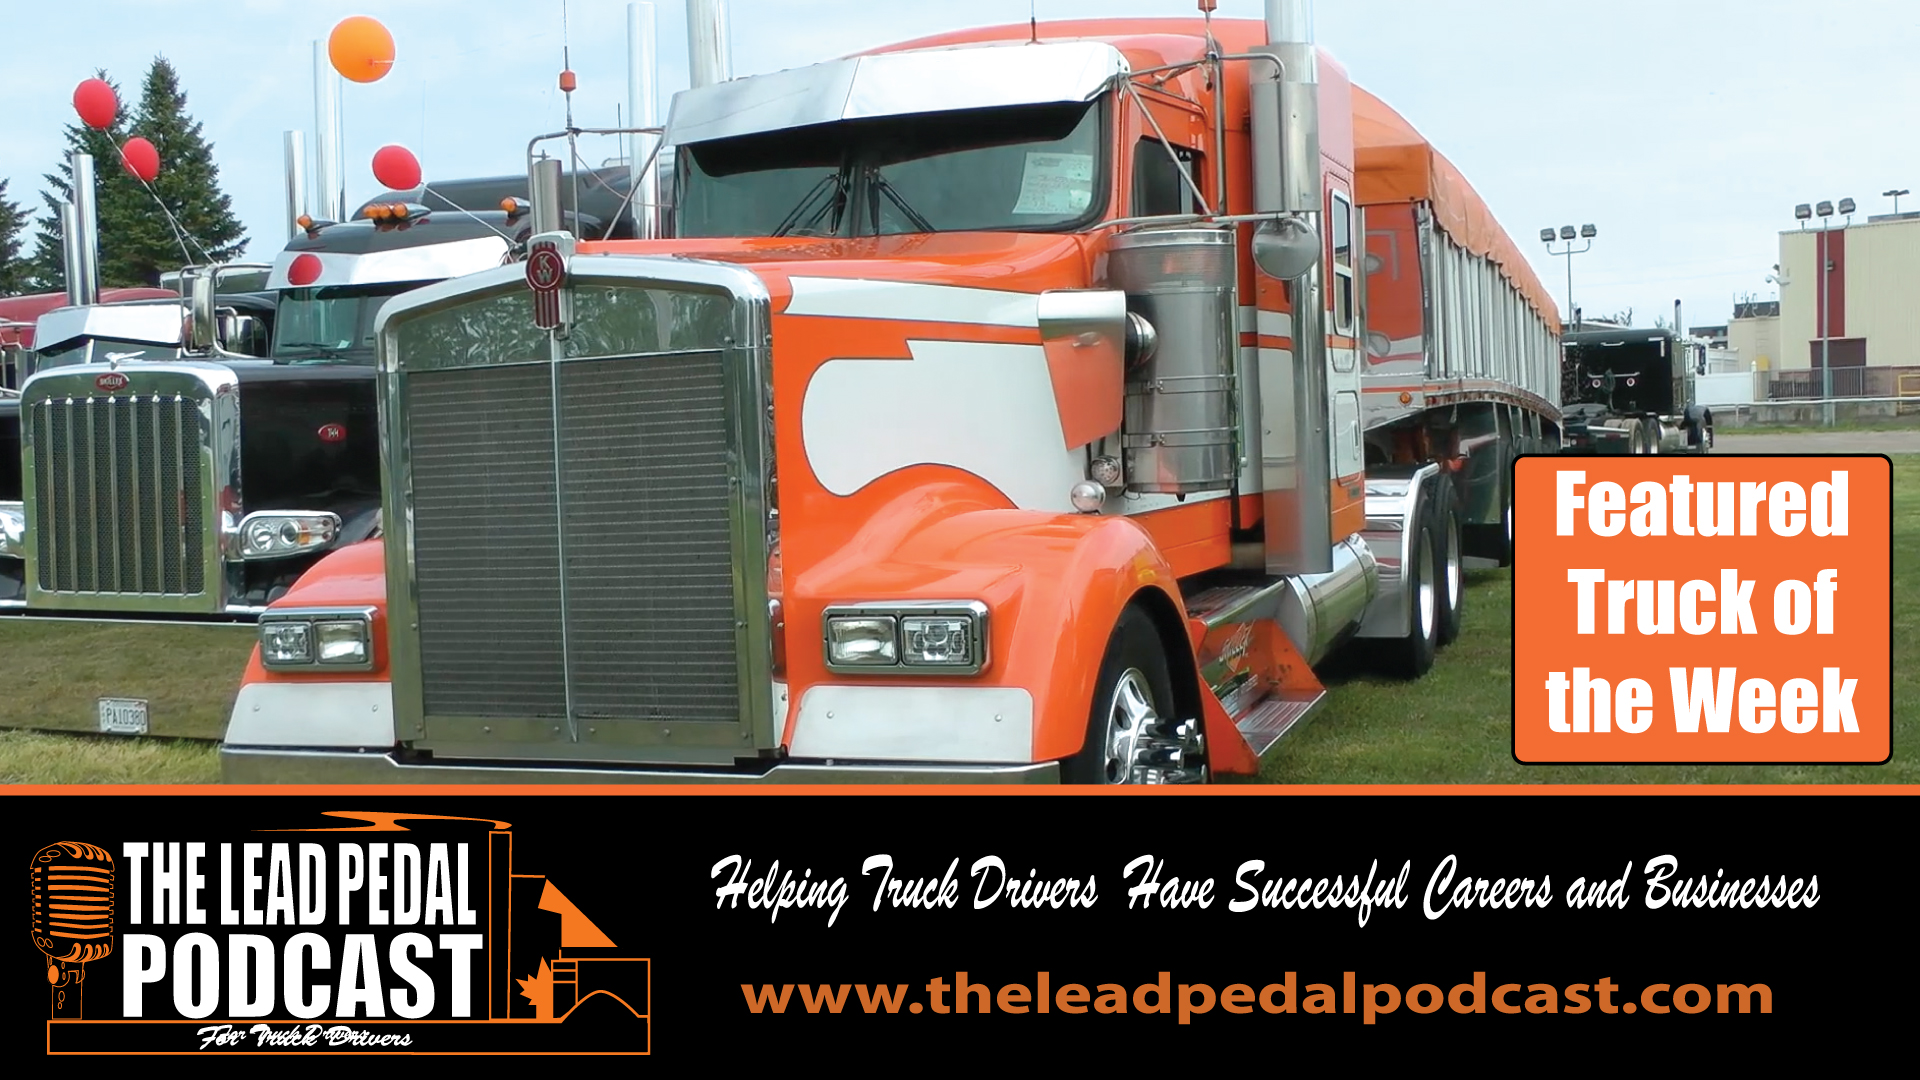 Featured truck-Orange Kenworth